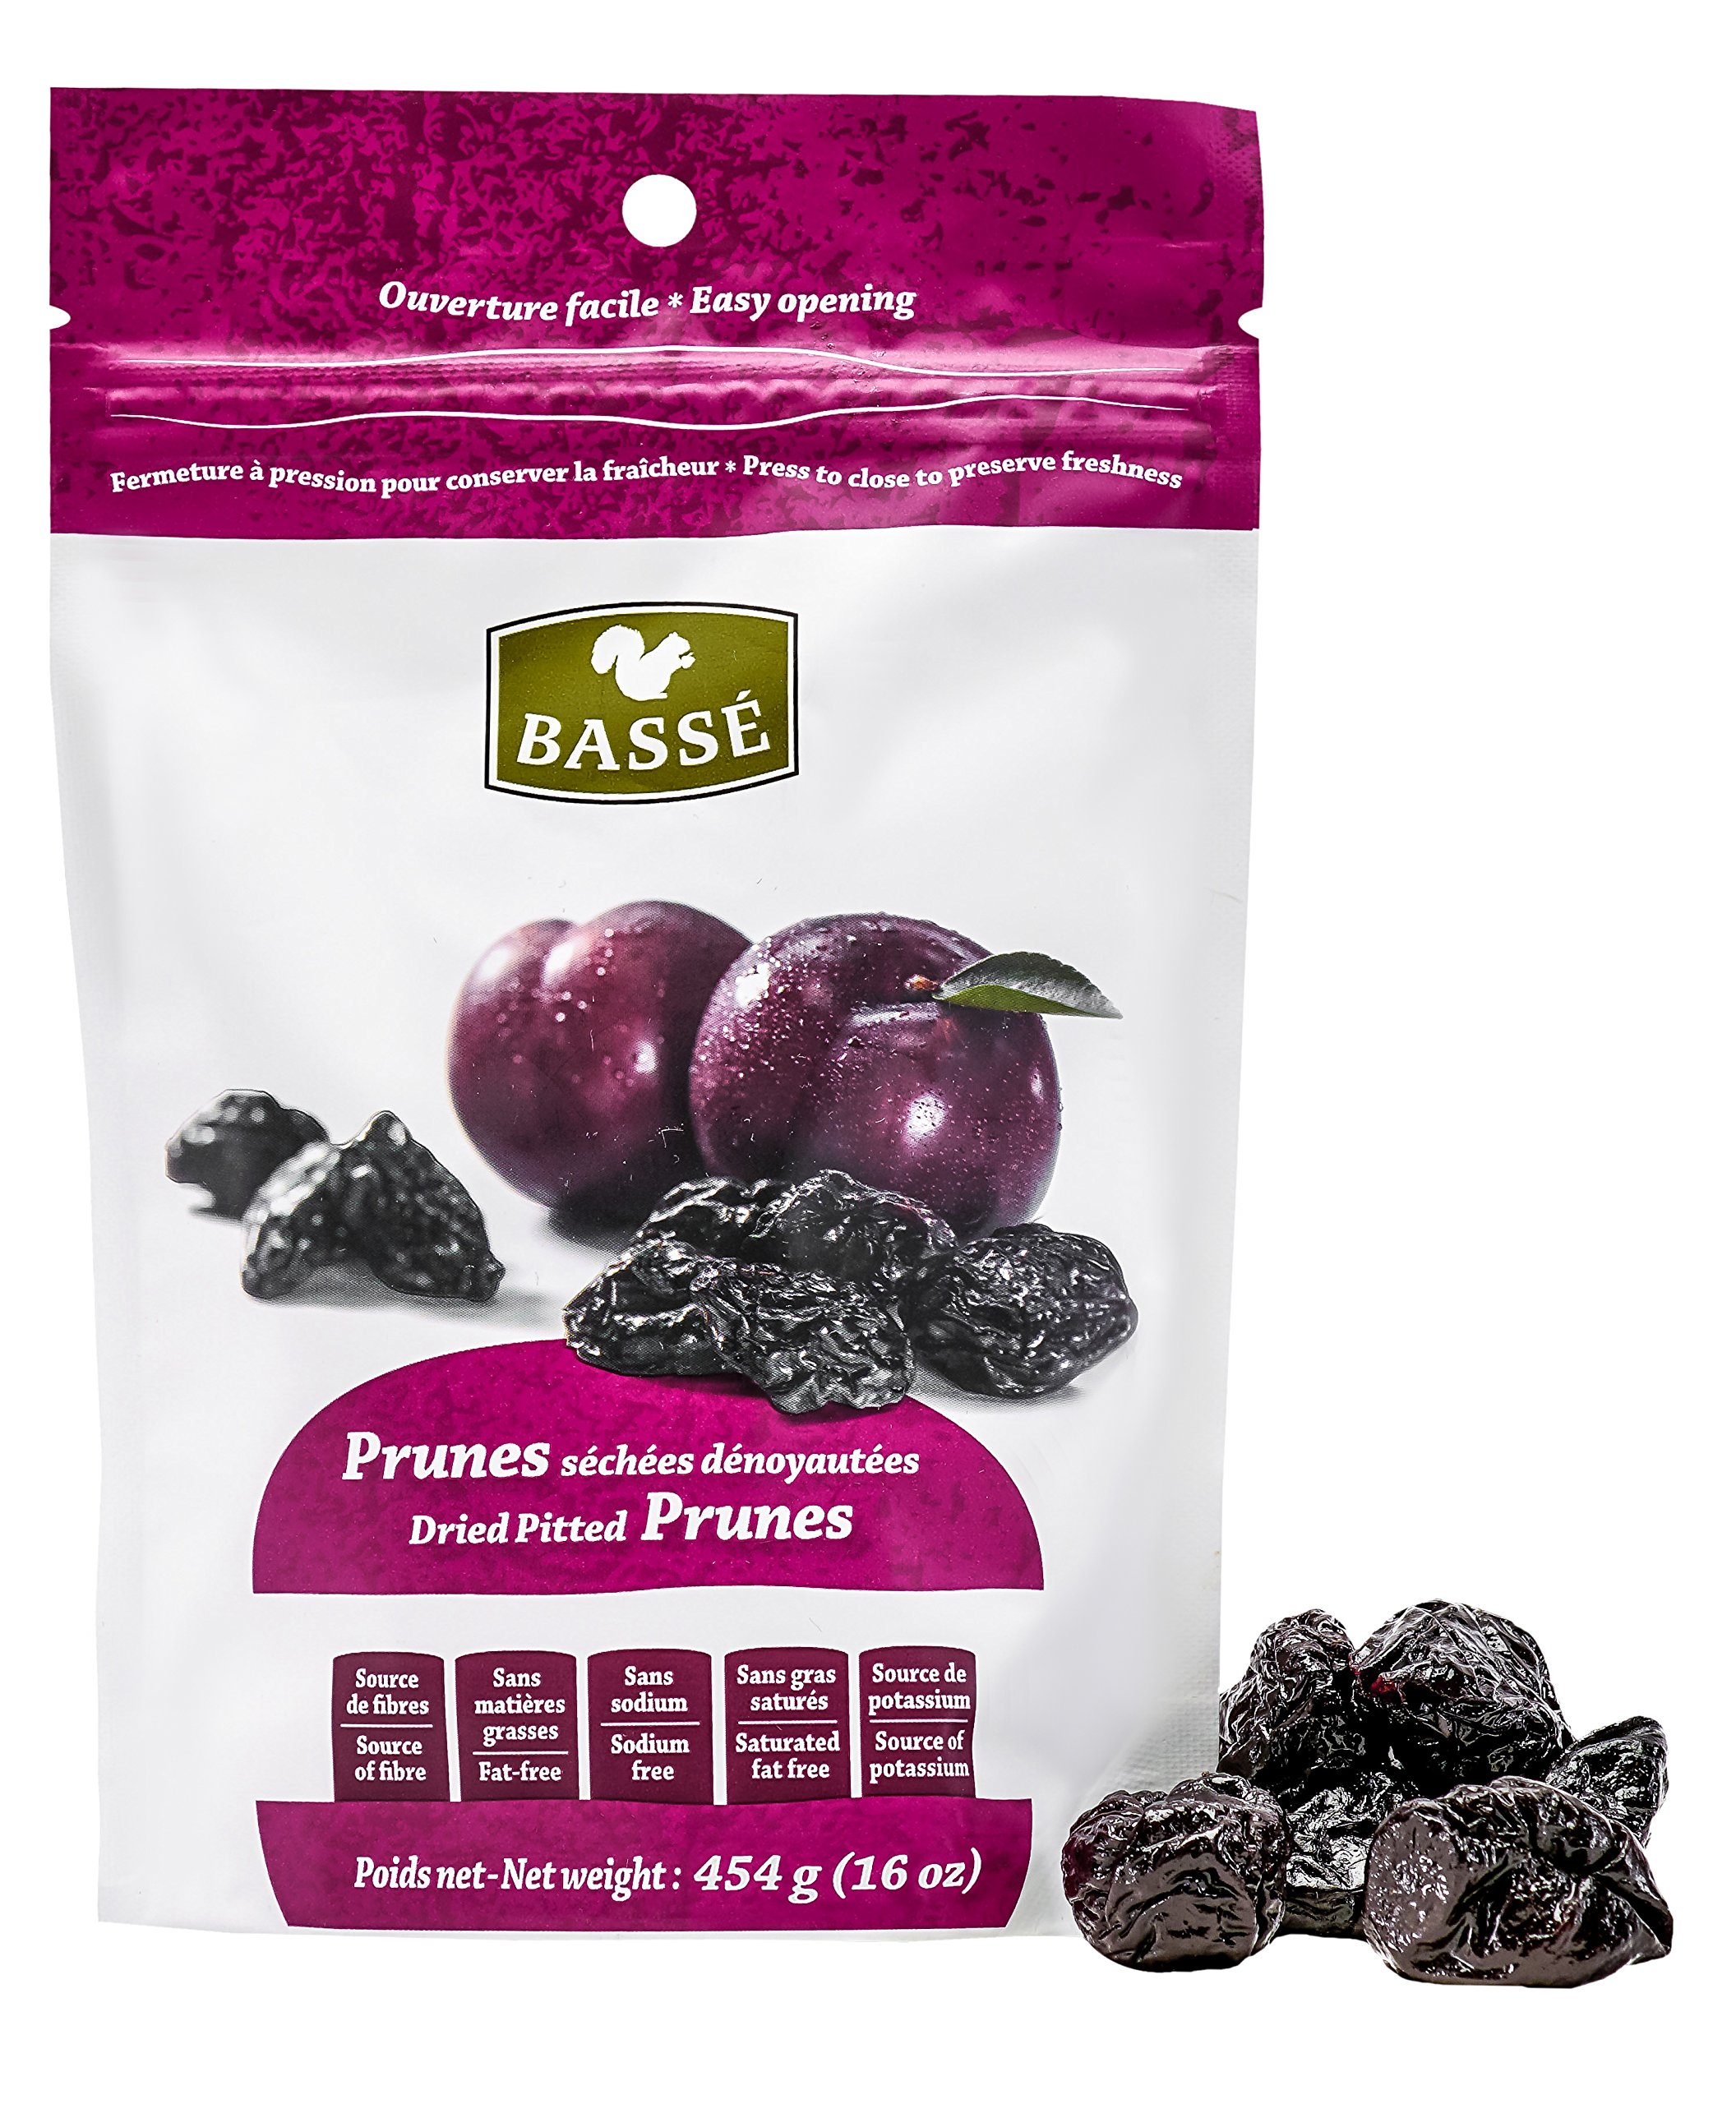 12lbs Prunes, Dried Pitted Prunes from Basse Dried Fruits - 12 1 Pound Bags of Dried Prunes, Best Foods For Weight Loss, Delicious Sweet Prunes full of Nutrition and Health Benefits (12 Pounds Total) by Basse Nuts